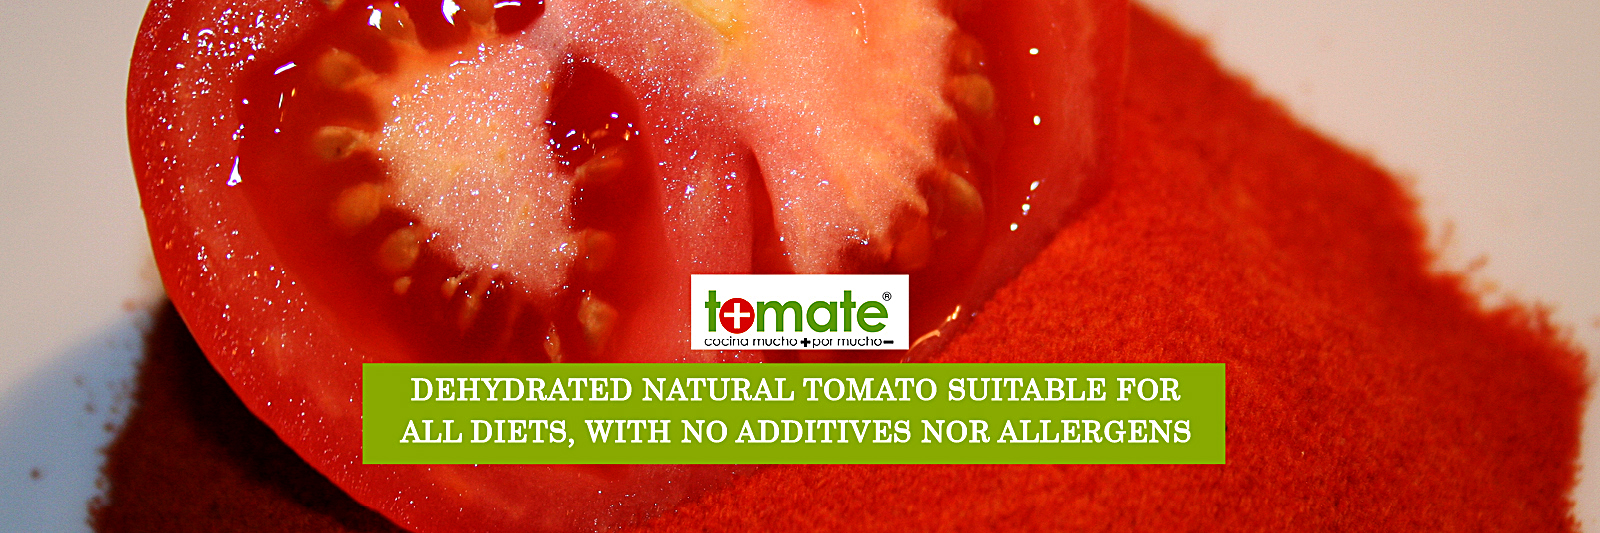 Dehydrated natural tomato suitable for all diets